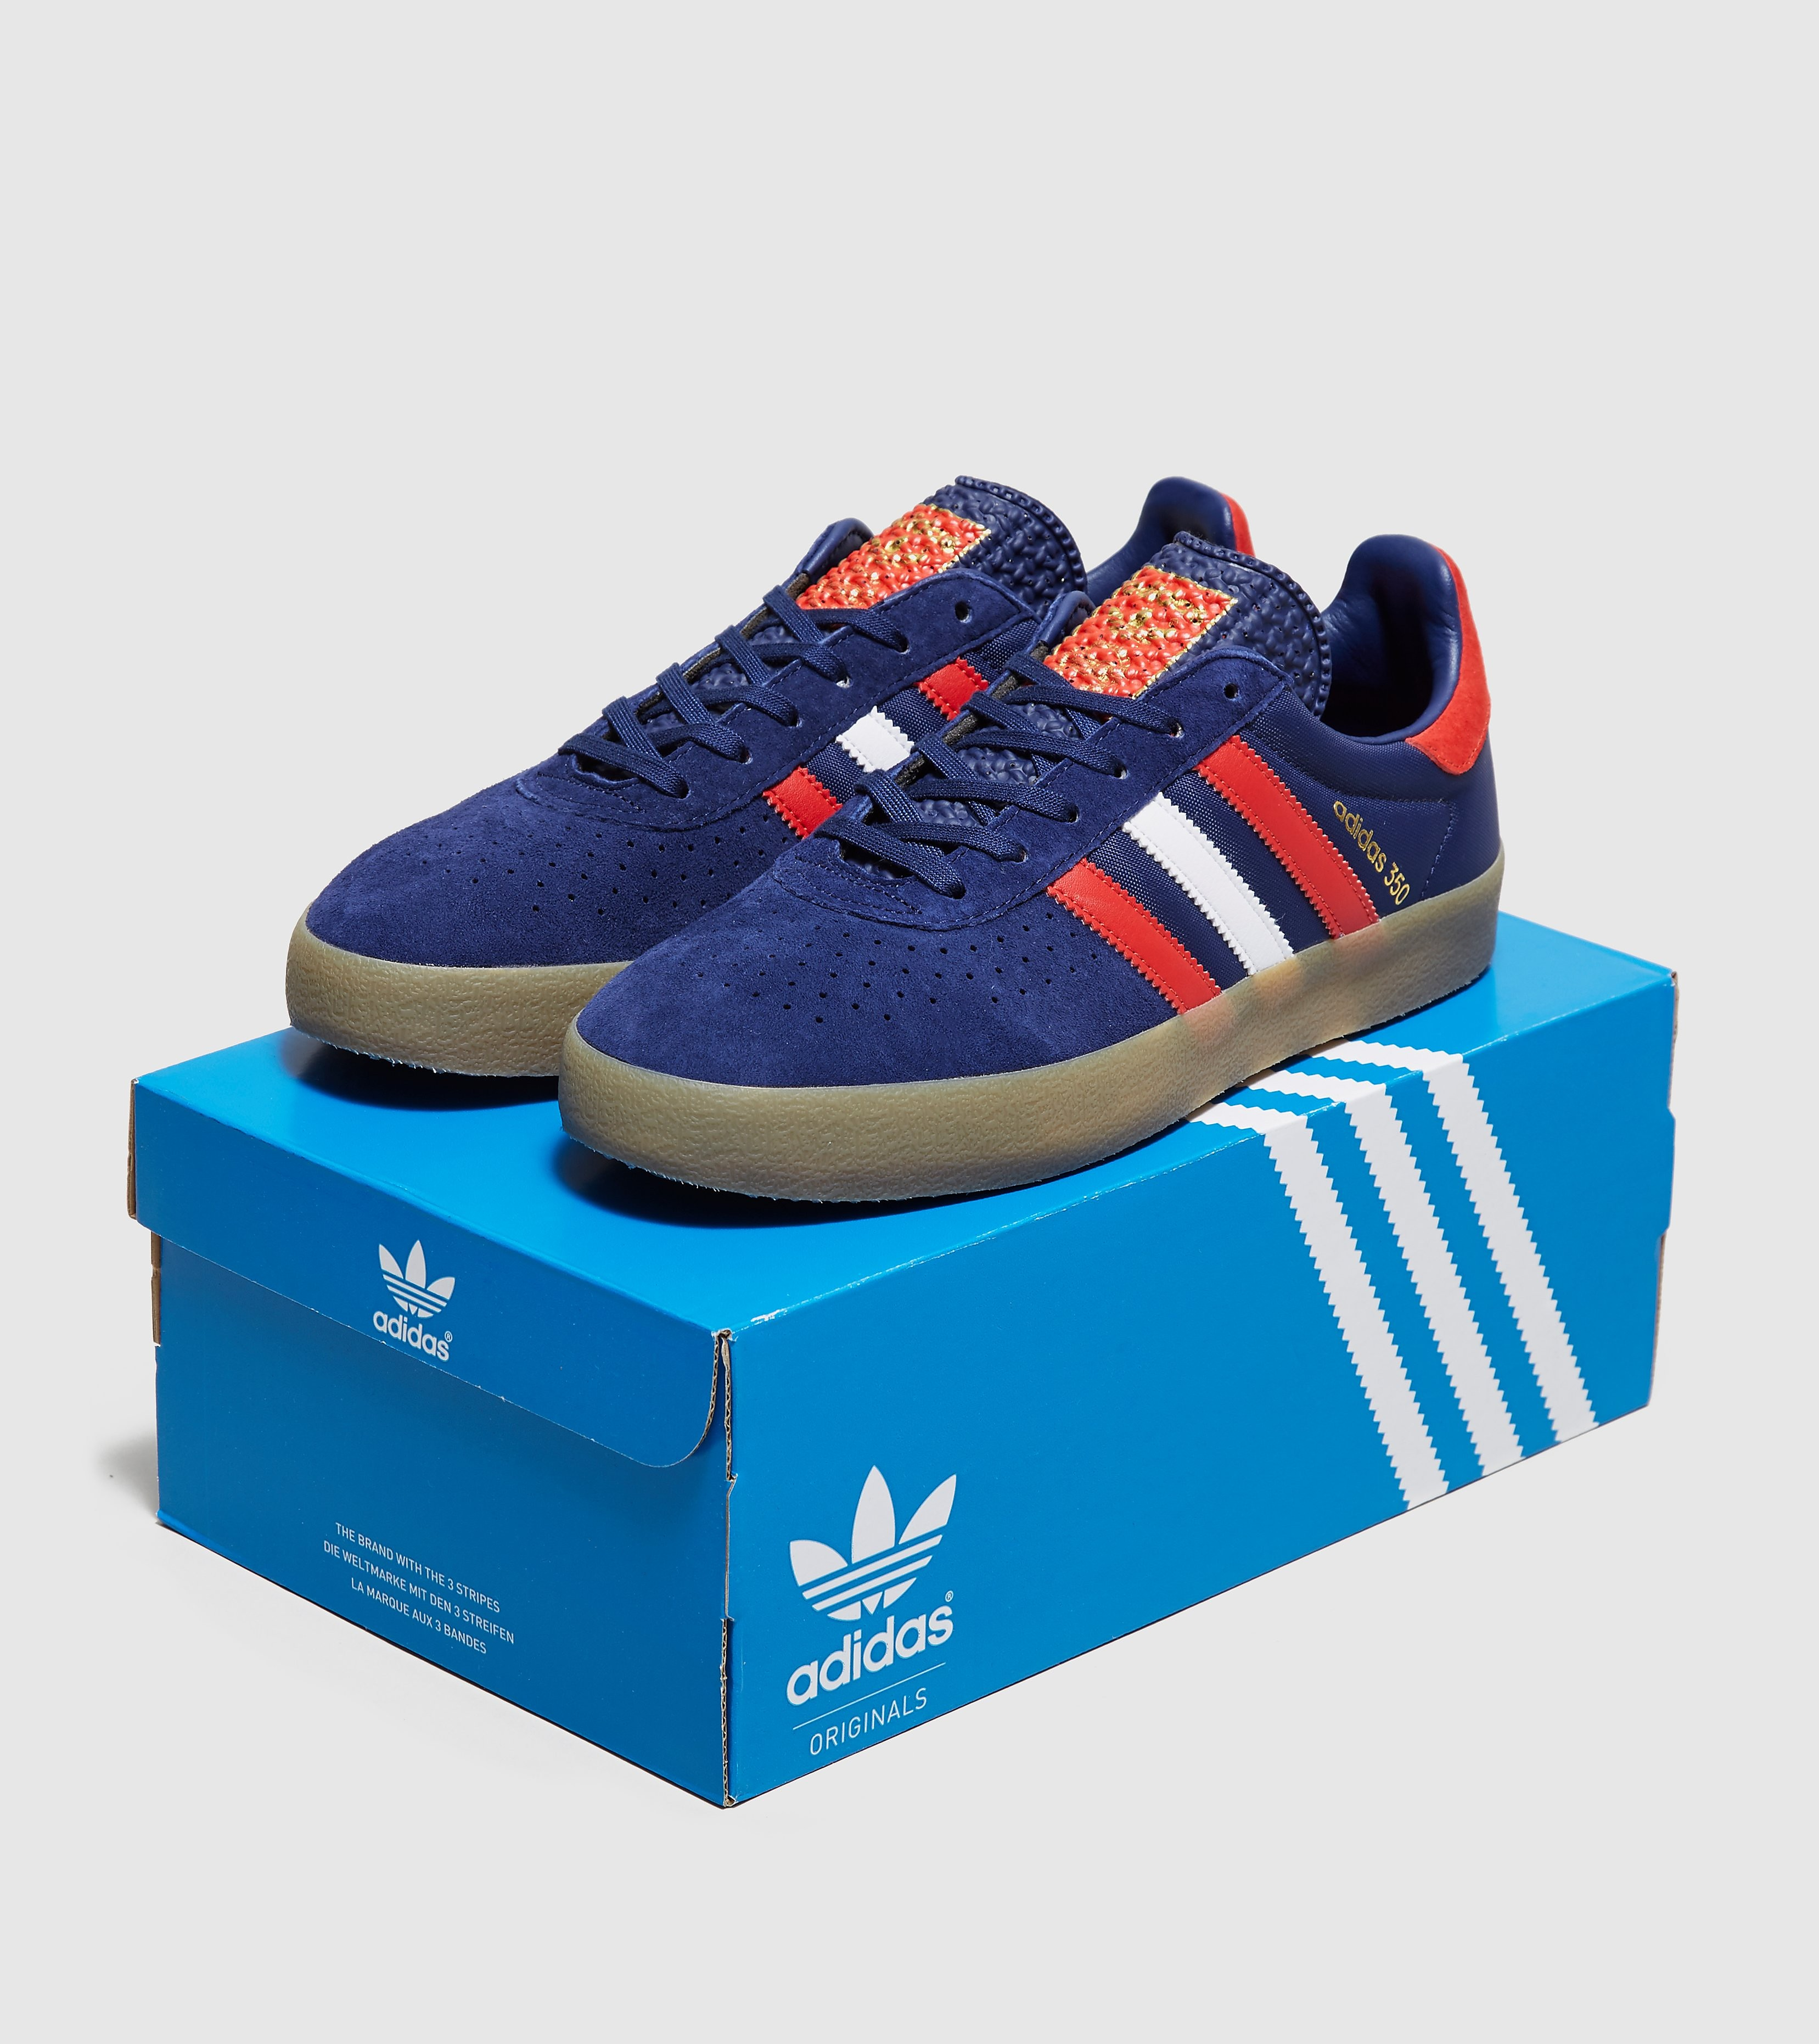 adidas Originals Archive adidas 350 Suede - size? Exclusive